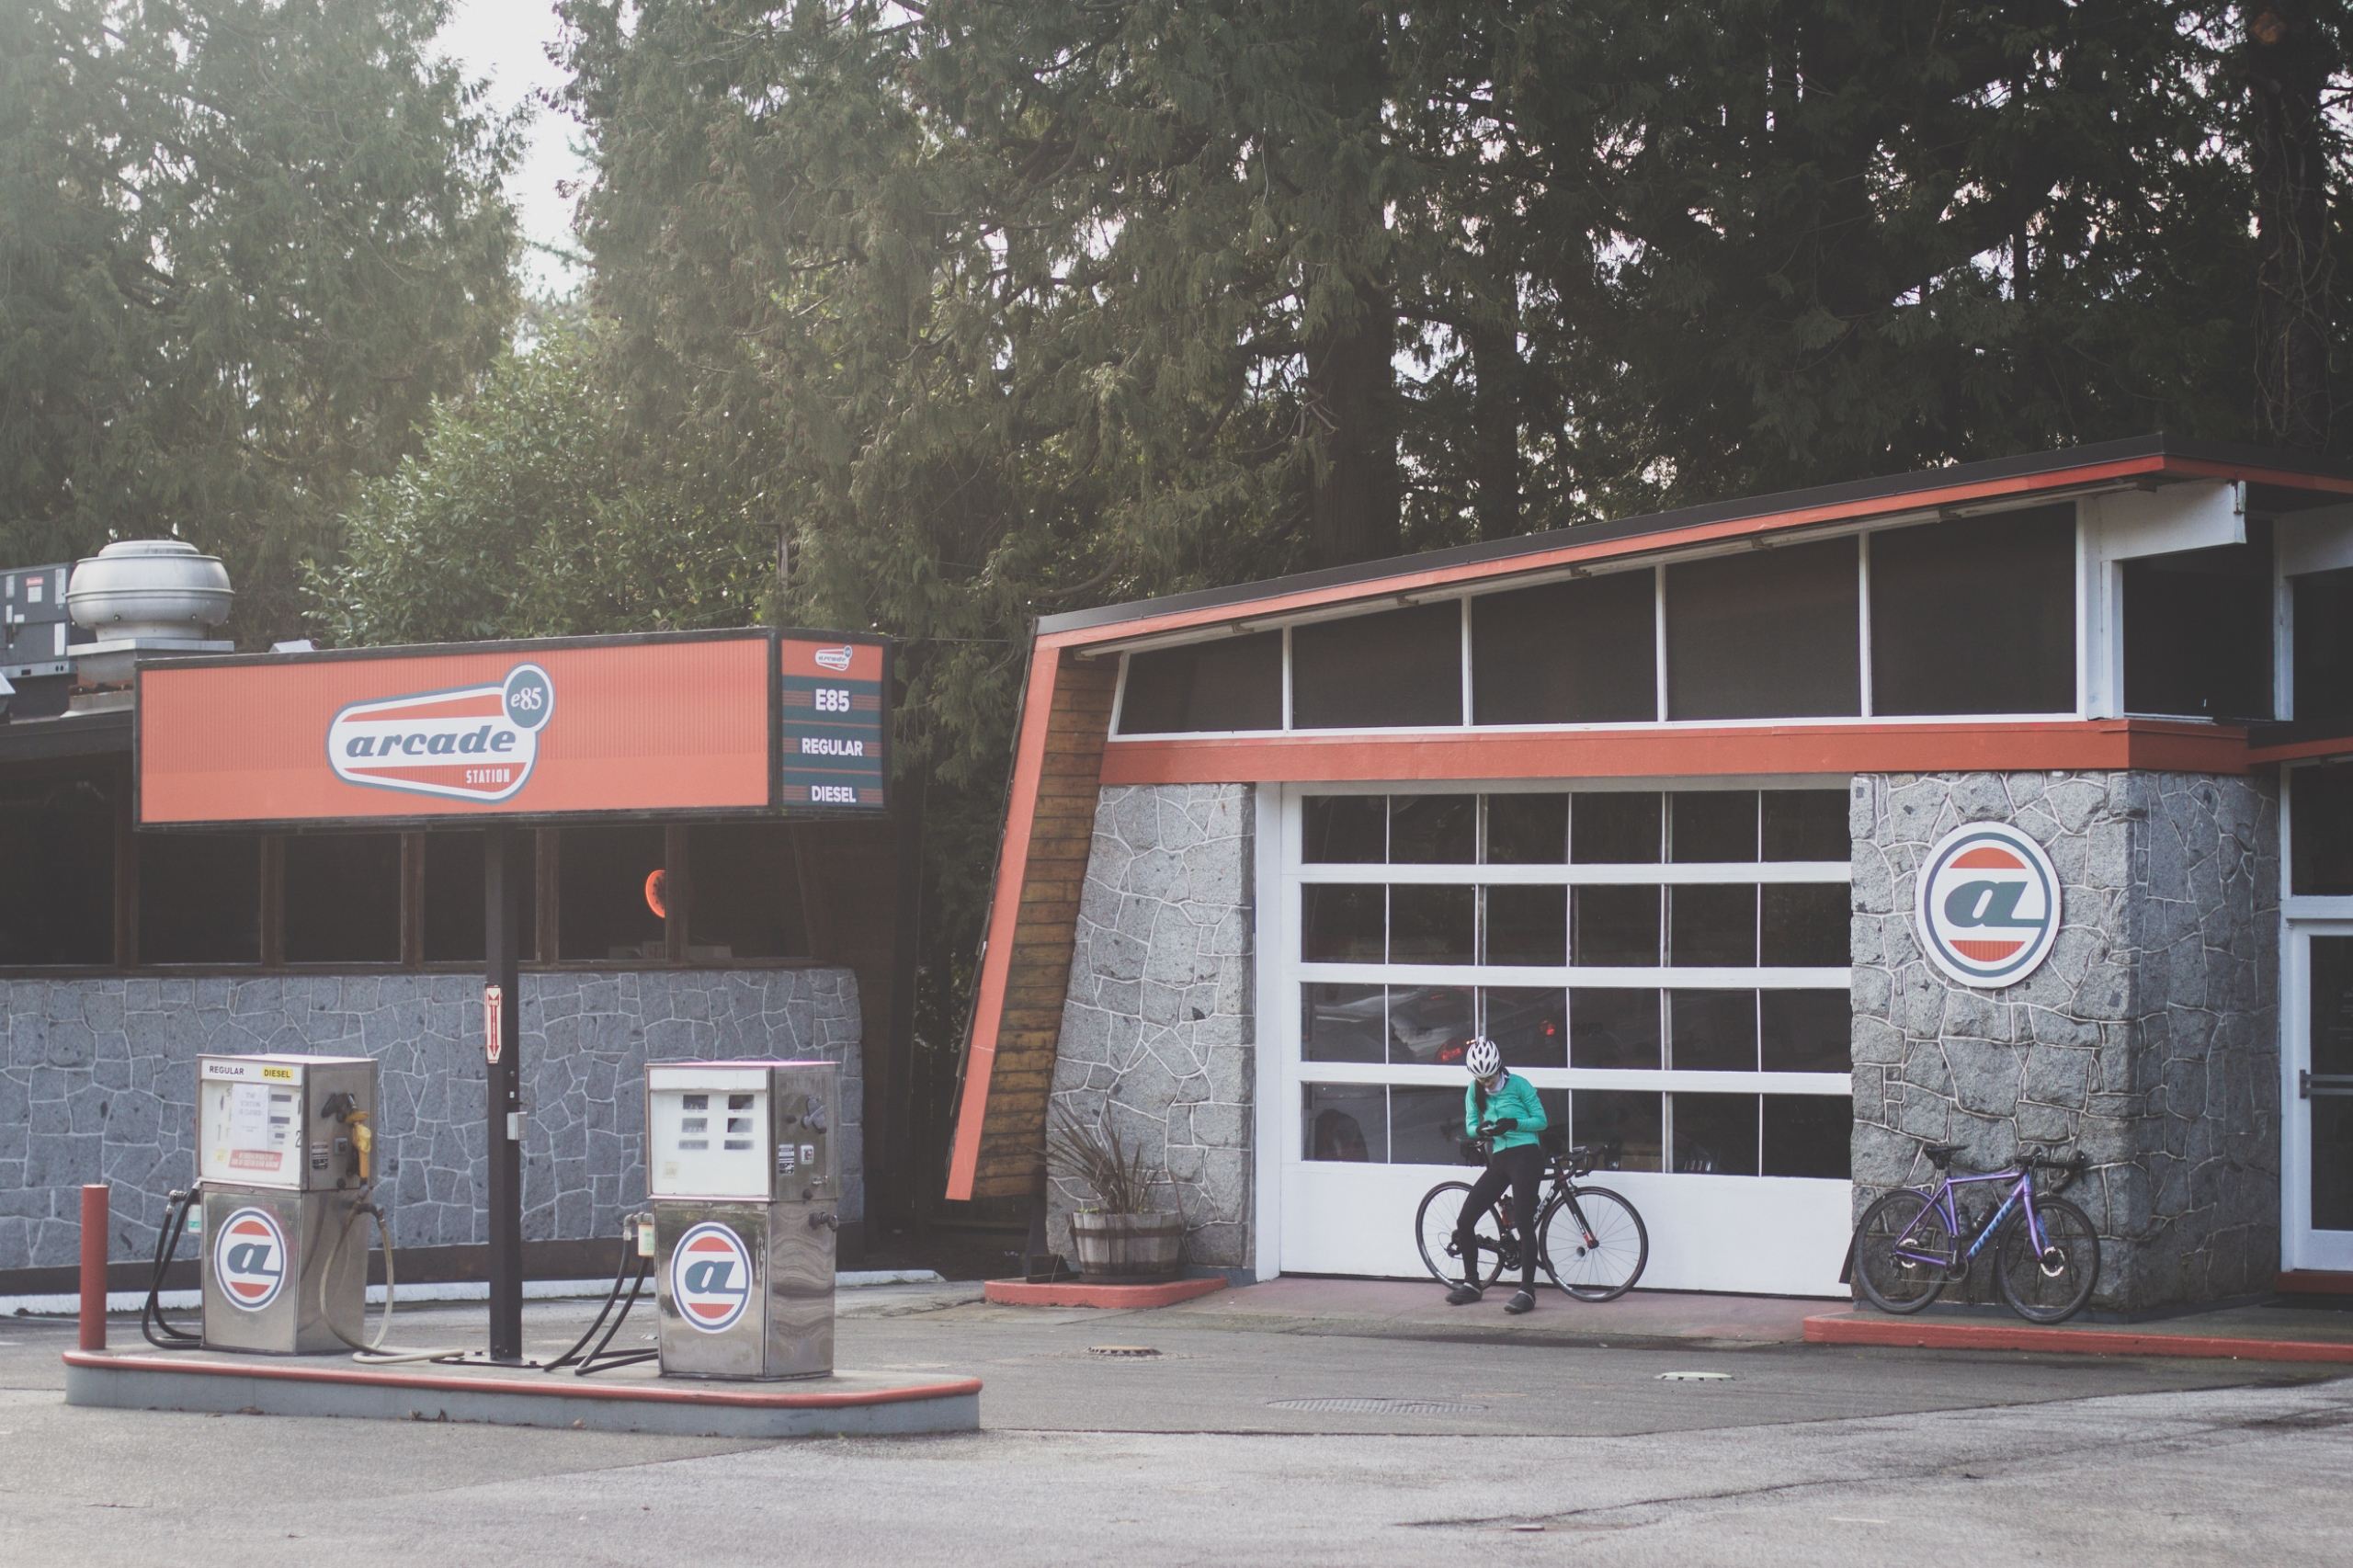 gas stations - ridegradient | ello